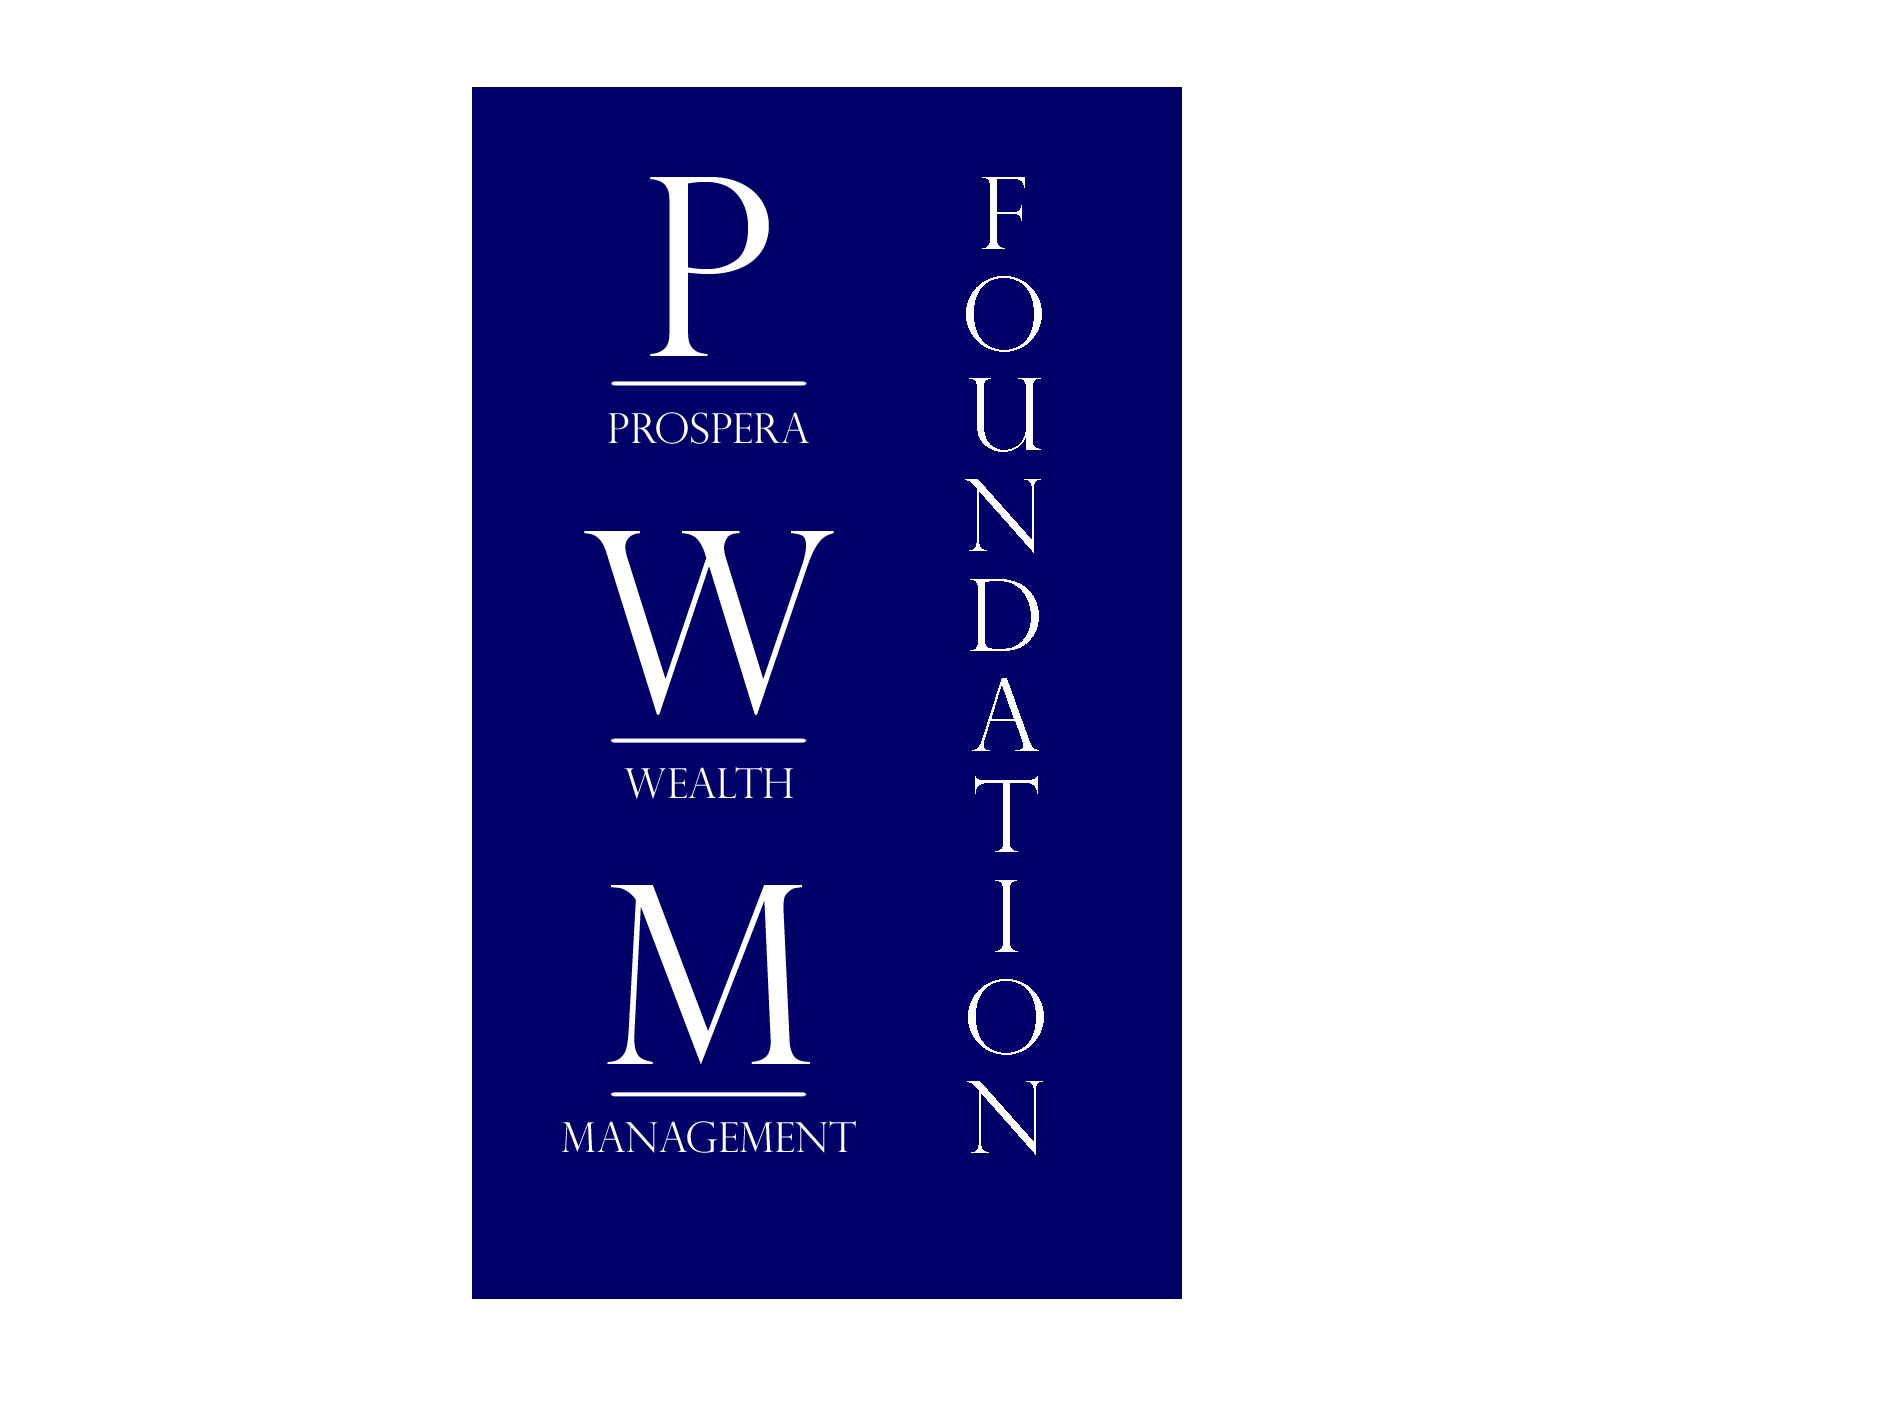 P.W.M. Foundation